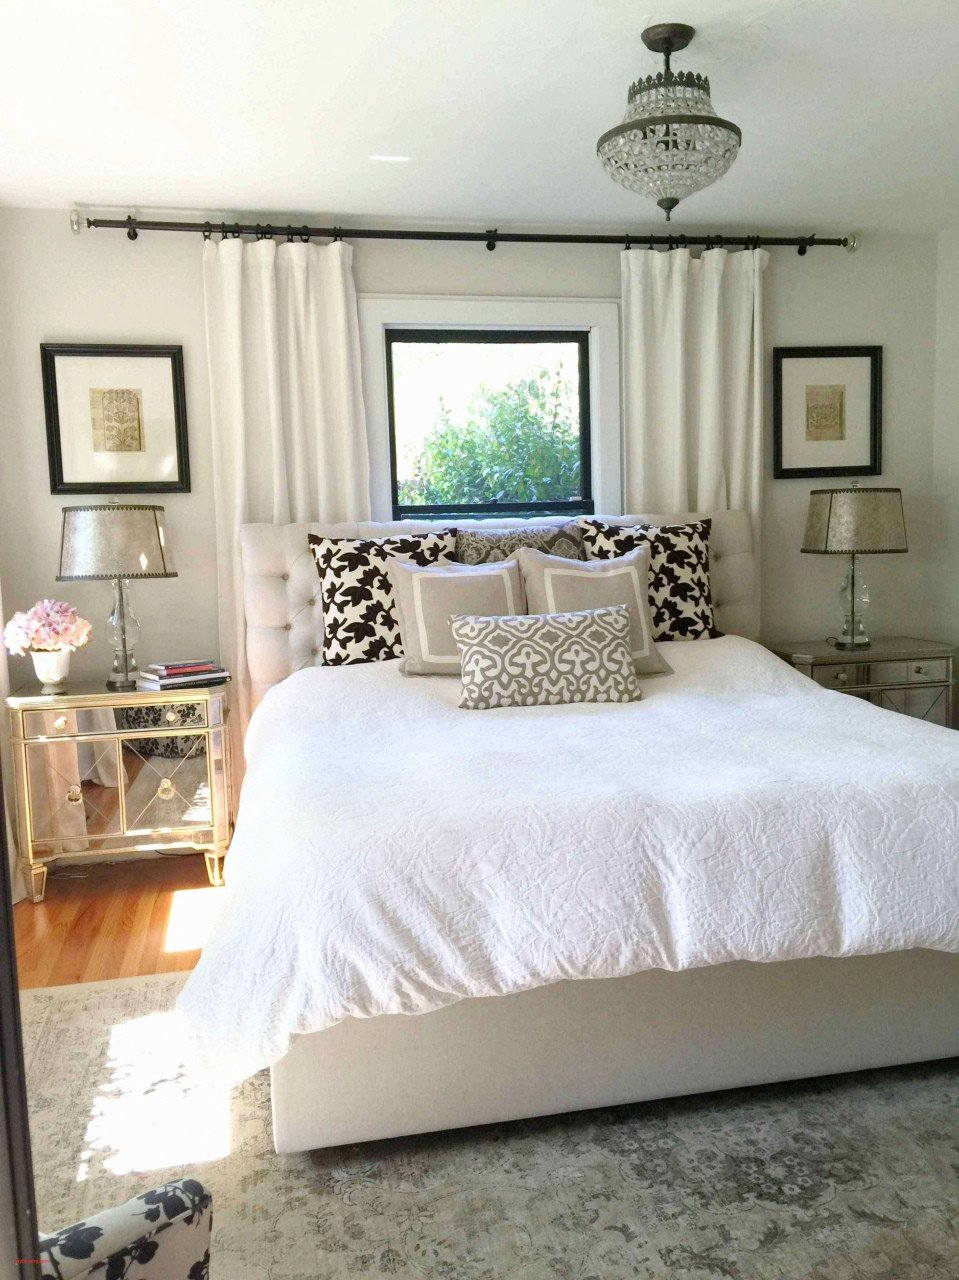 Best Place to Buy Bedroom Furniture New Shabby Chic Sheets — Procura Home Blog